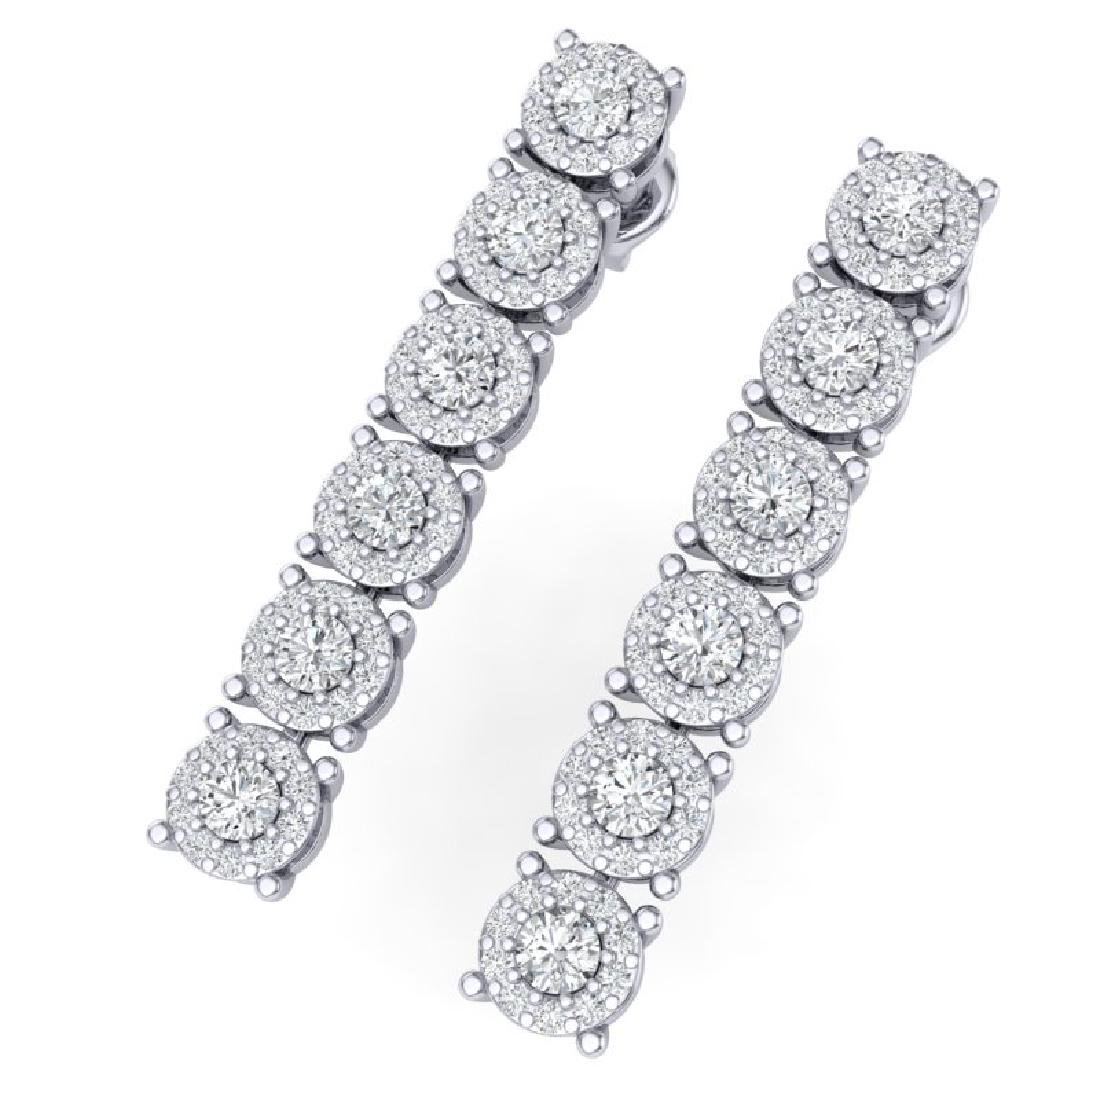 2 CTW Certified SI/I Diamond Halo Earrings 18K White